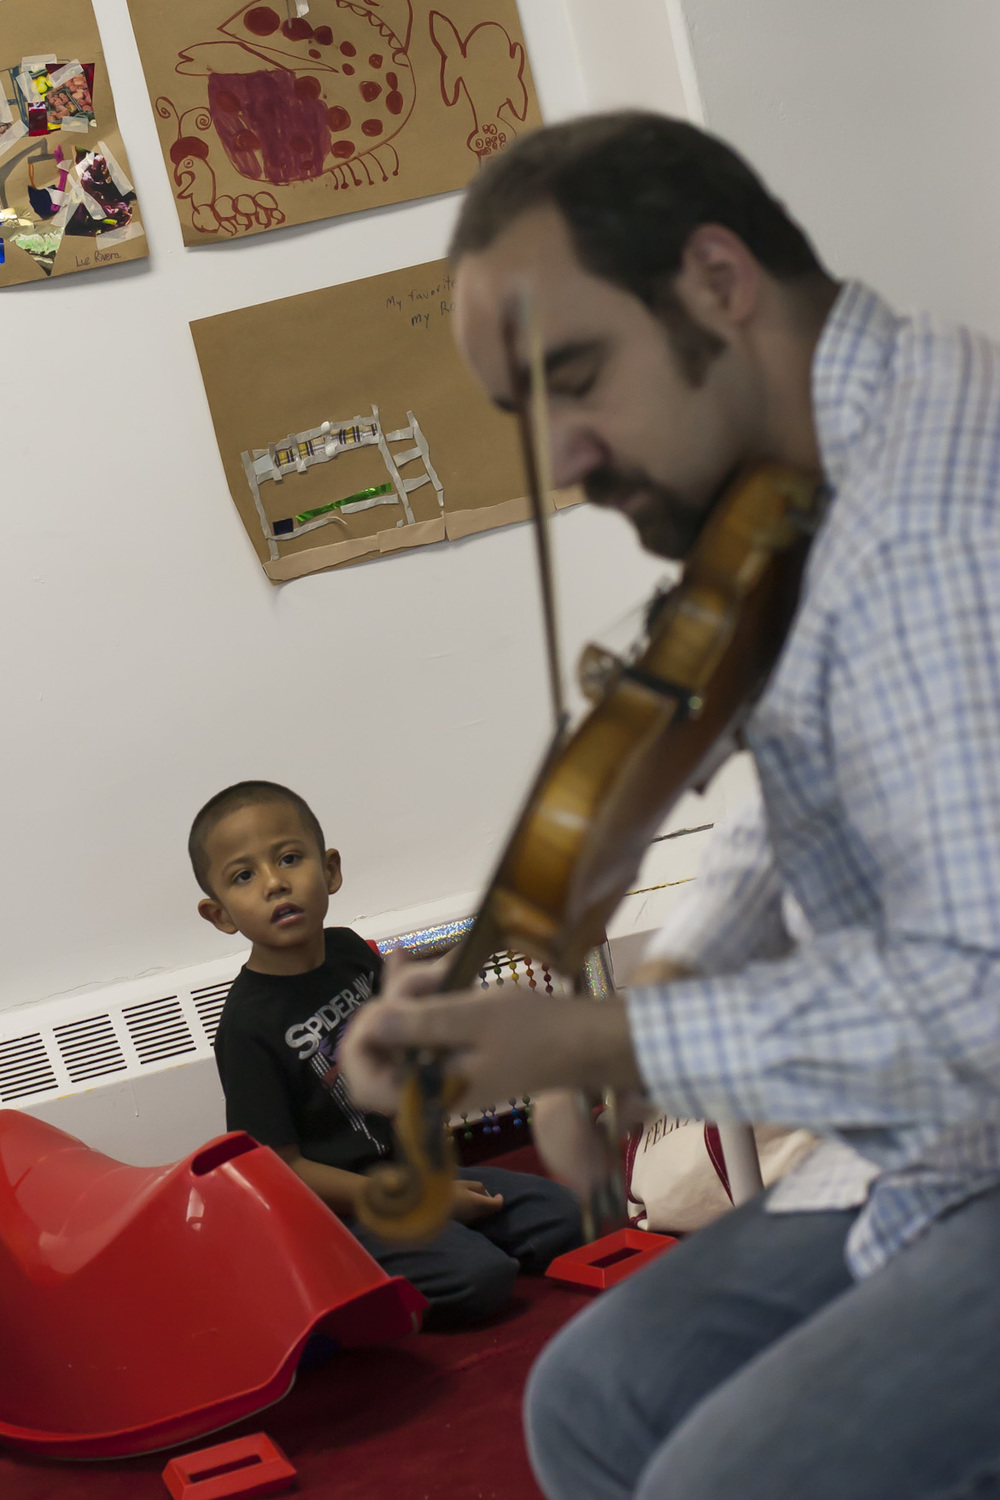 Jamir loves the live music events provided. Jamir is  Autistic  along with having  ADHD . I love seeing how Jamir is mesmerized by the musicians and he actually sits down to watch the performance. Music calms him down, which is a rarity as he loves to explore the play space.